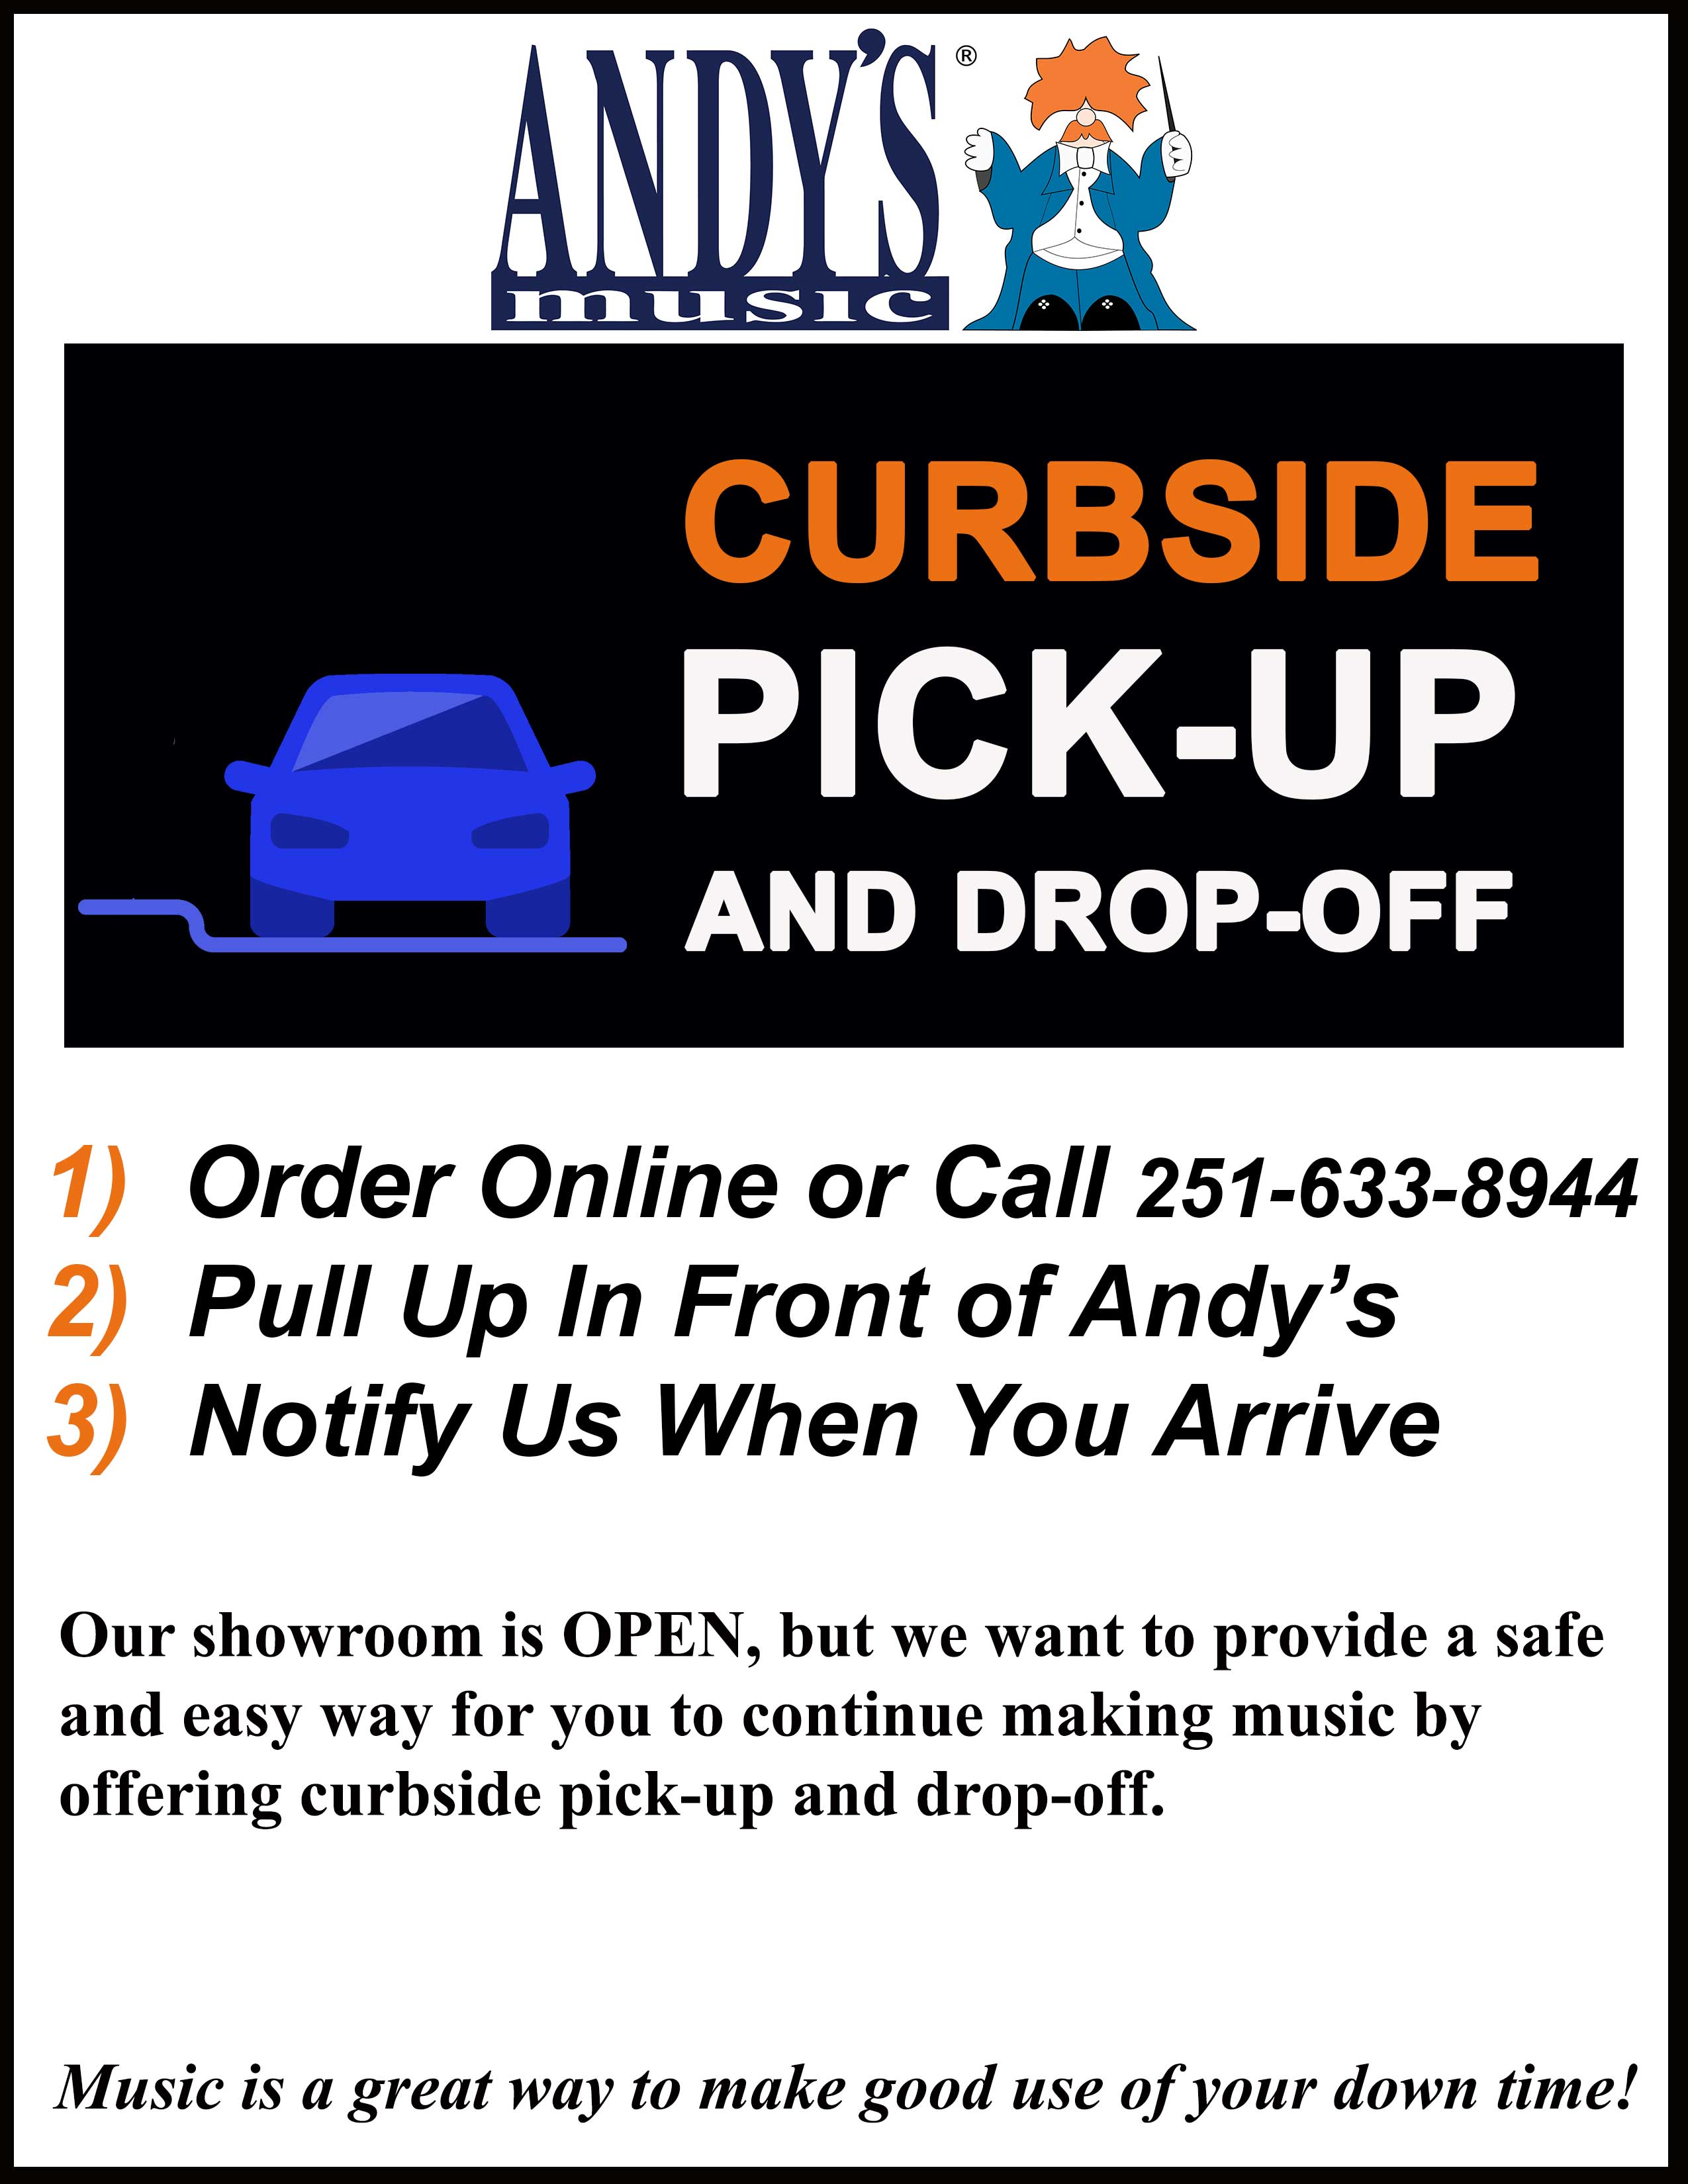 Curbside pickup and dropoff at Andy's Music